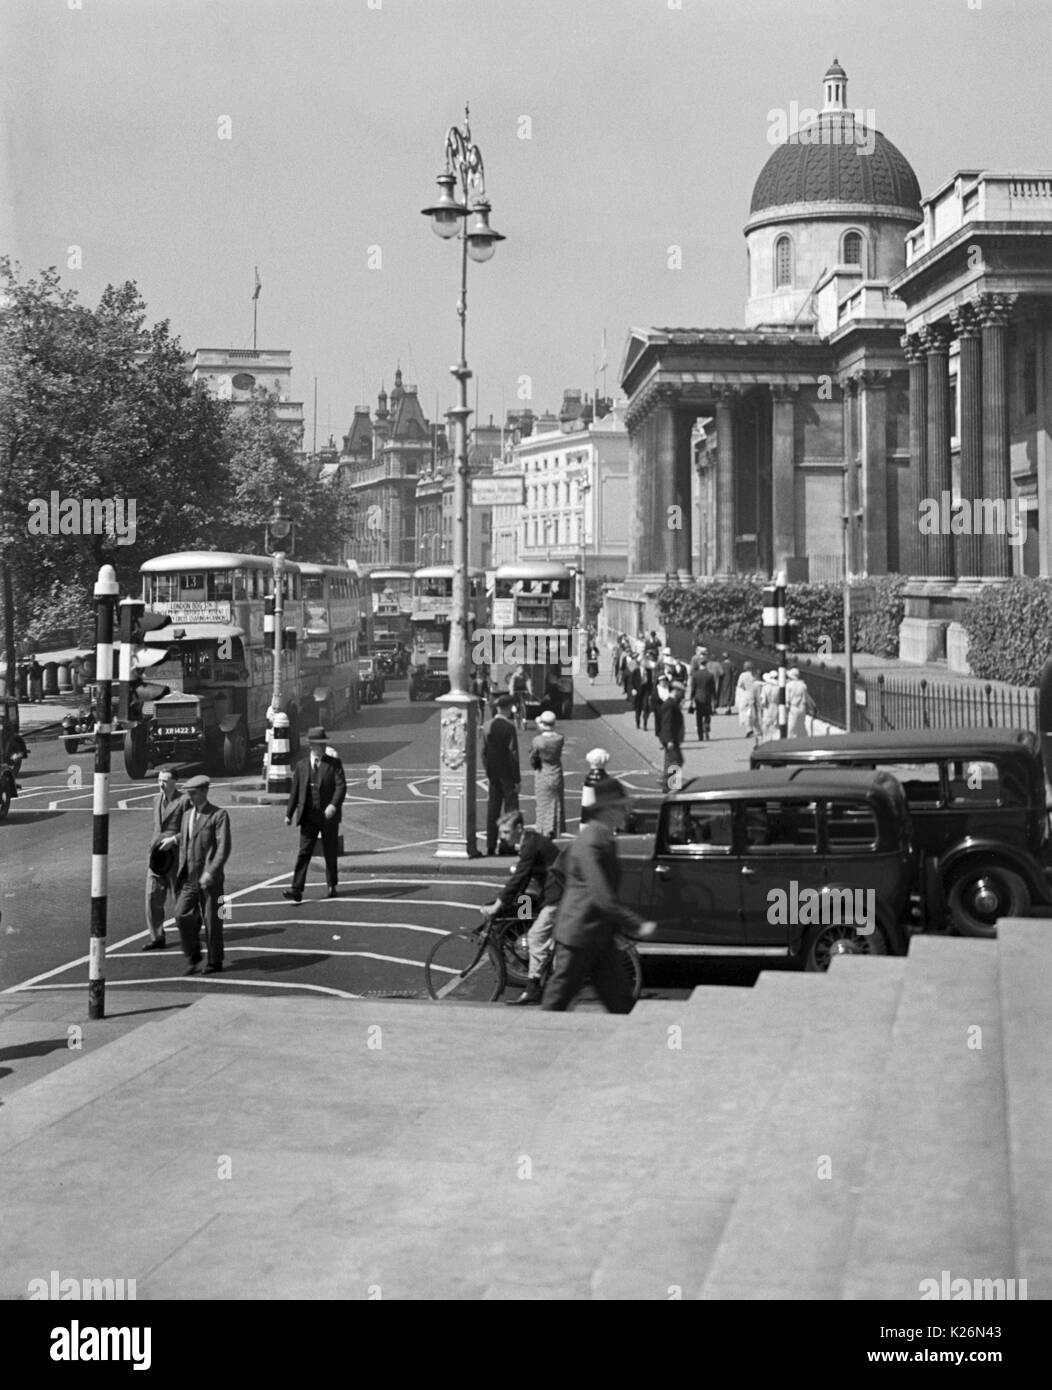 AJAXNETPHOTO. 1935. LONDON, ENGLAND. - TRAFALGAR SQUARE TRAFFIC COMNG FROM PALL MALL. TAKEN FROM STEPS OF ST.MARTIN'S CHURCH.PHOTO:T.J.SPOONER COLL/AJAX VINTAGE PICTURE LIBRARY REF; TJS1935_01 - Stock Image